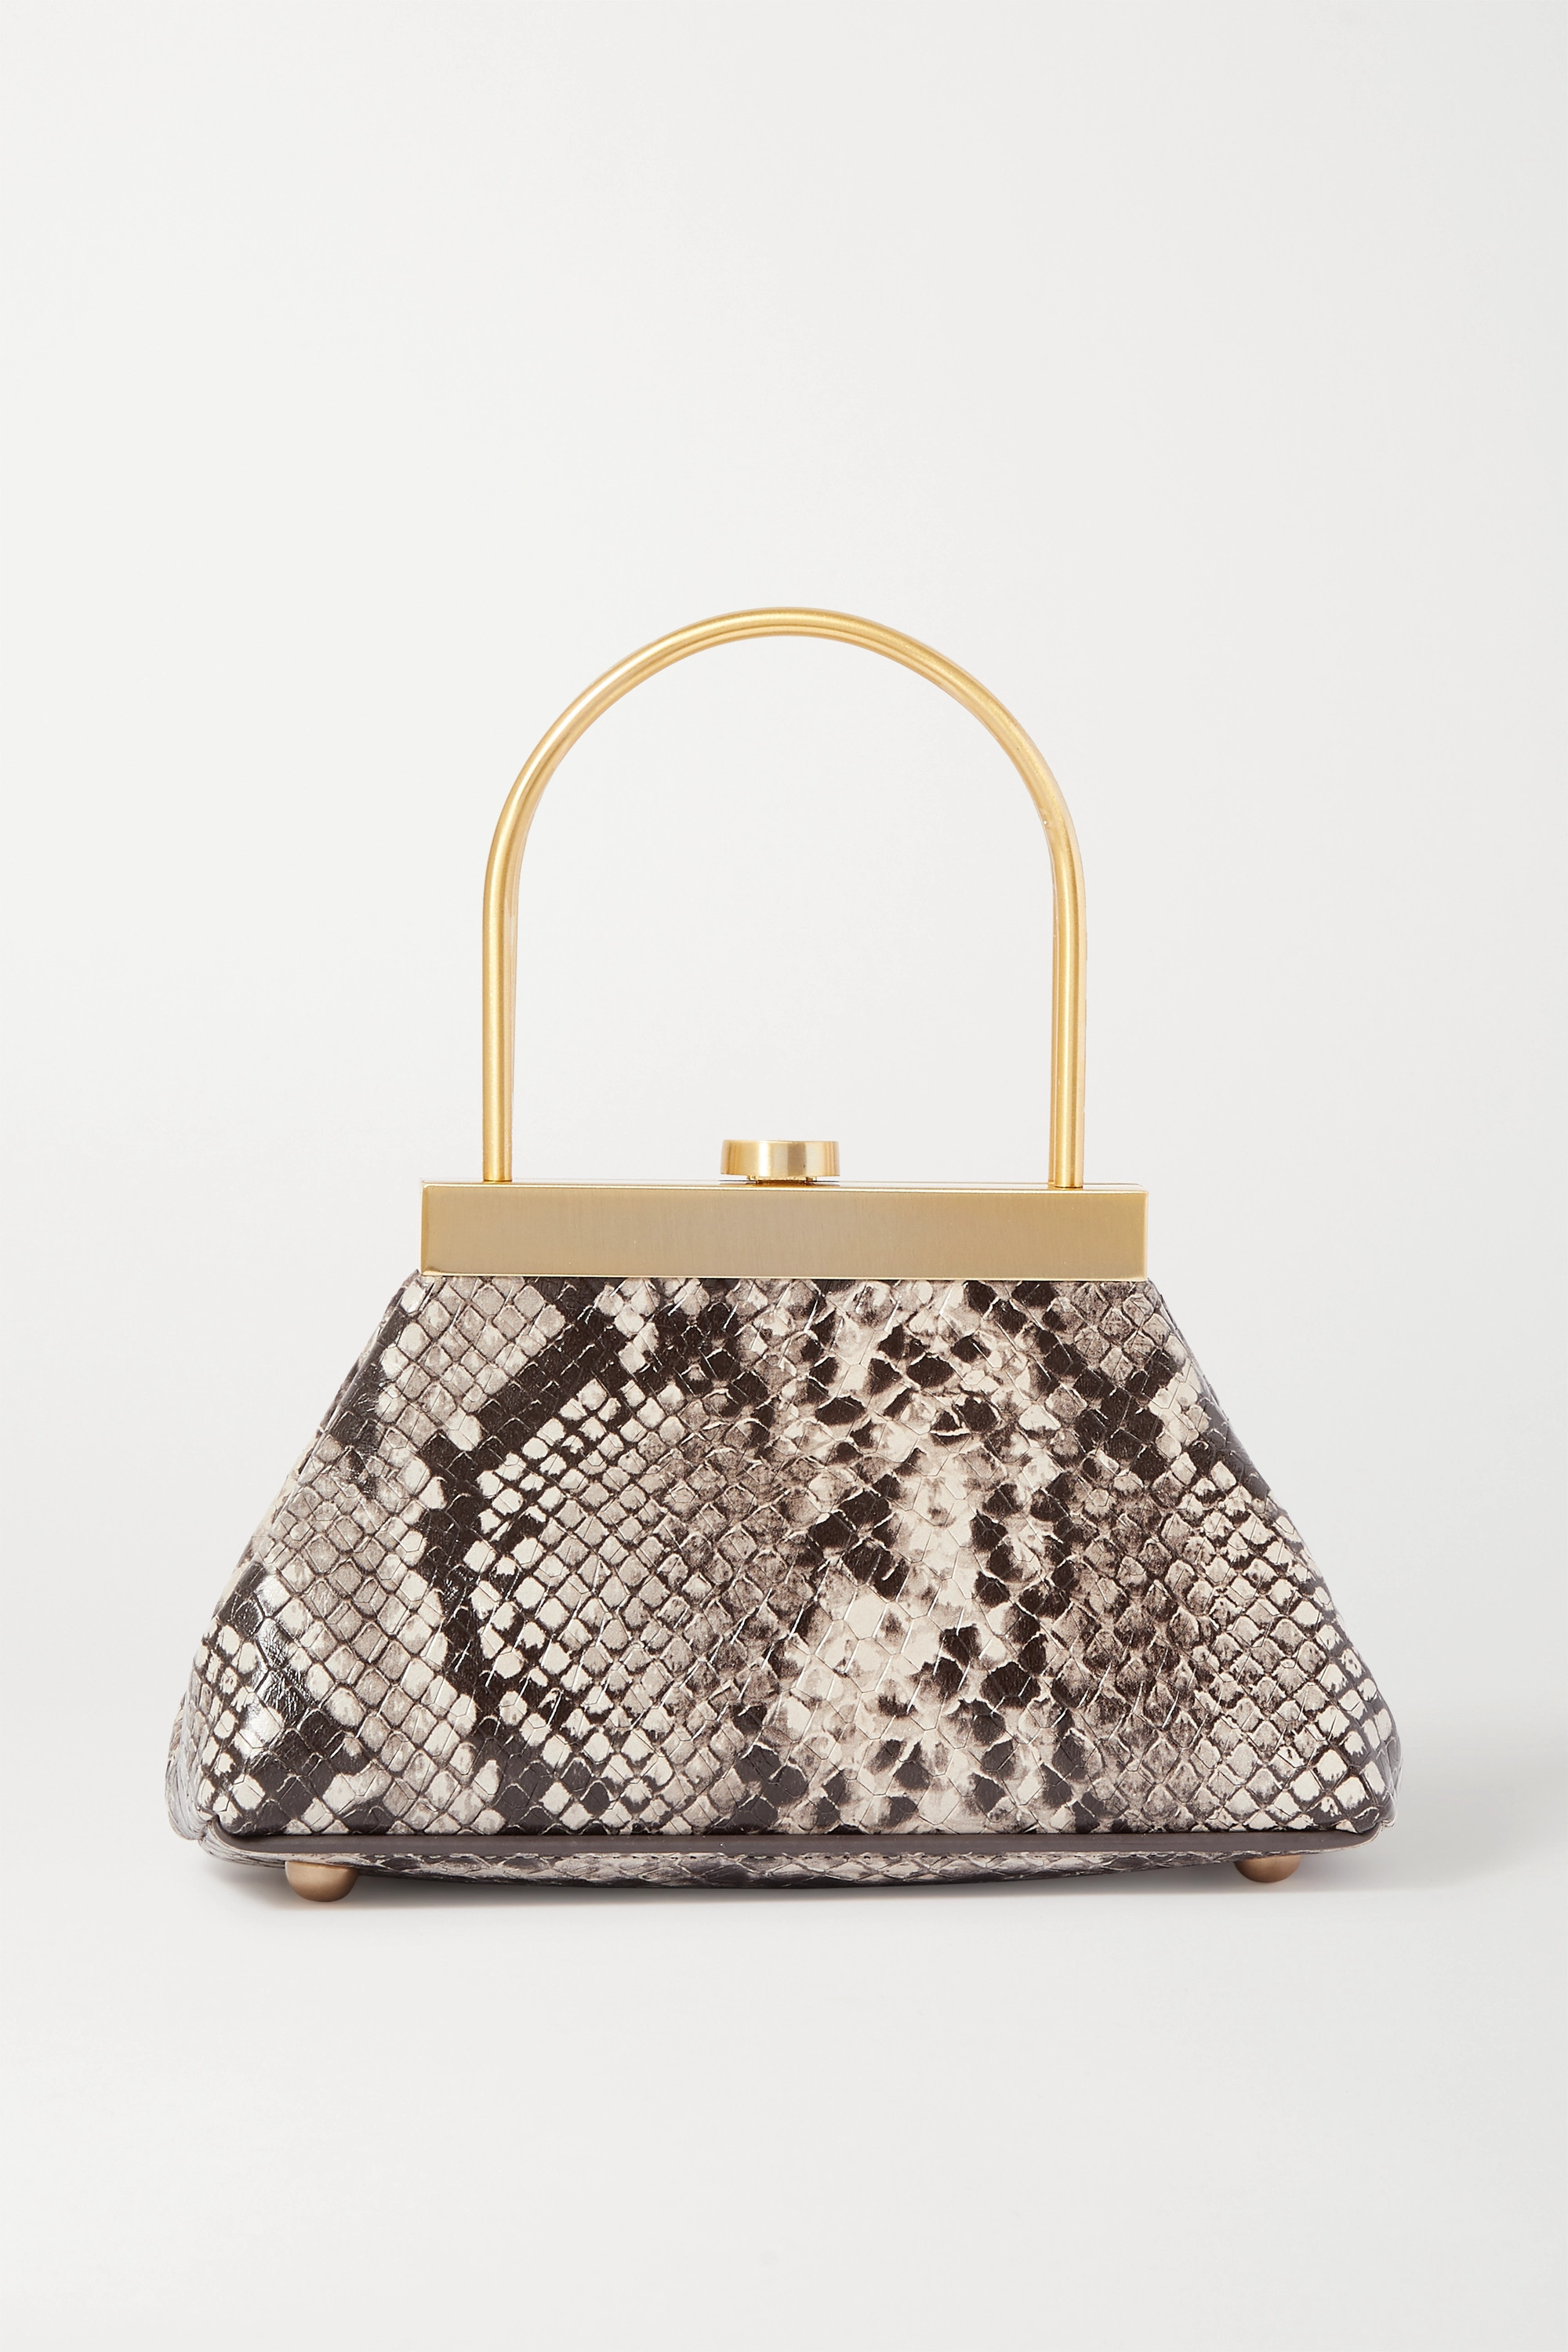 Cult Gaia Estelle mini snake-effect leather tote